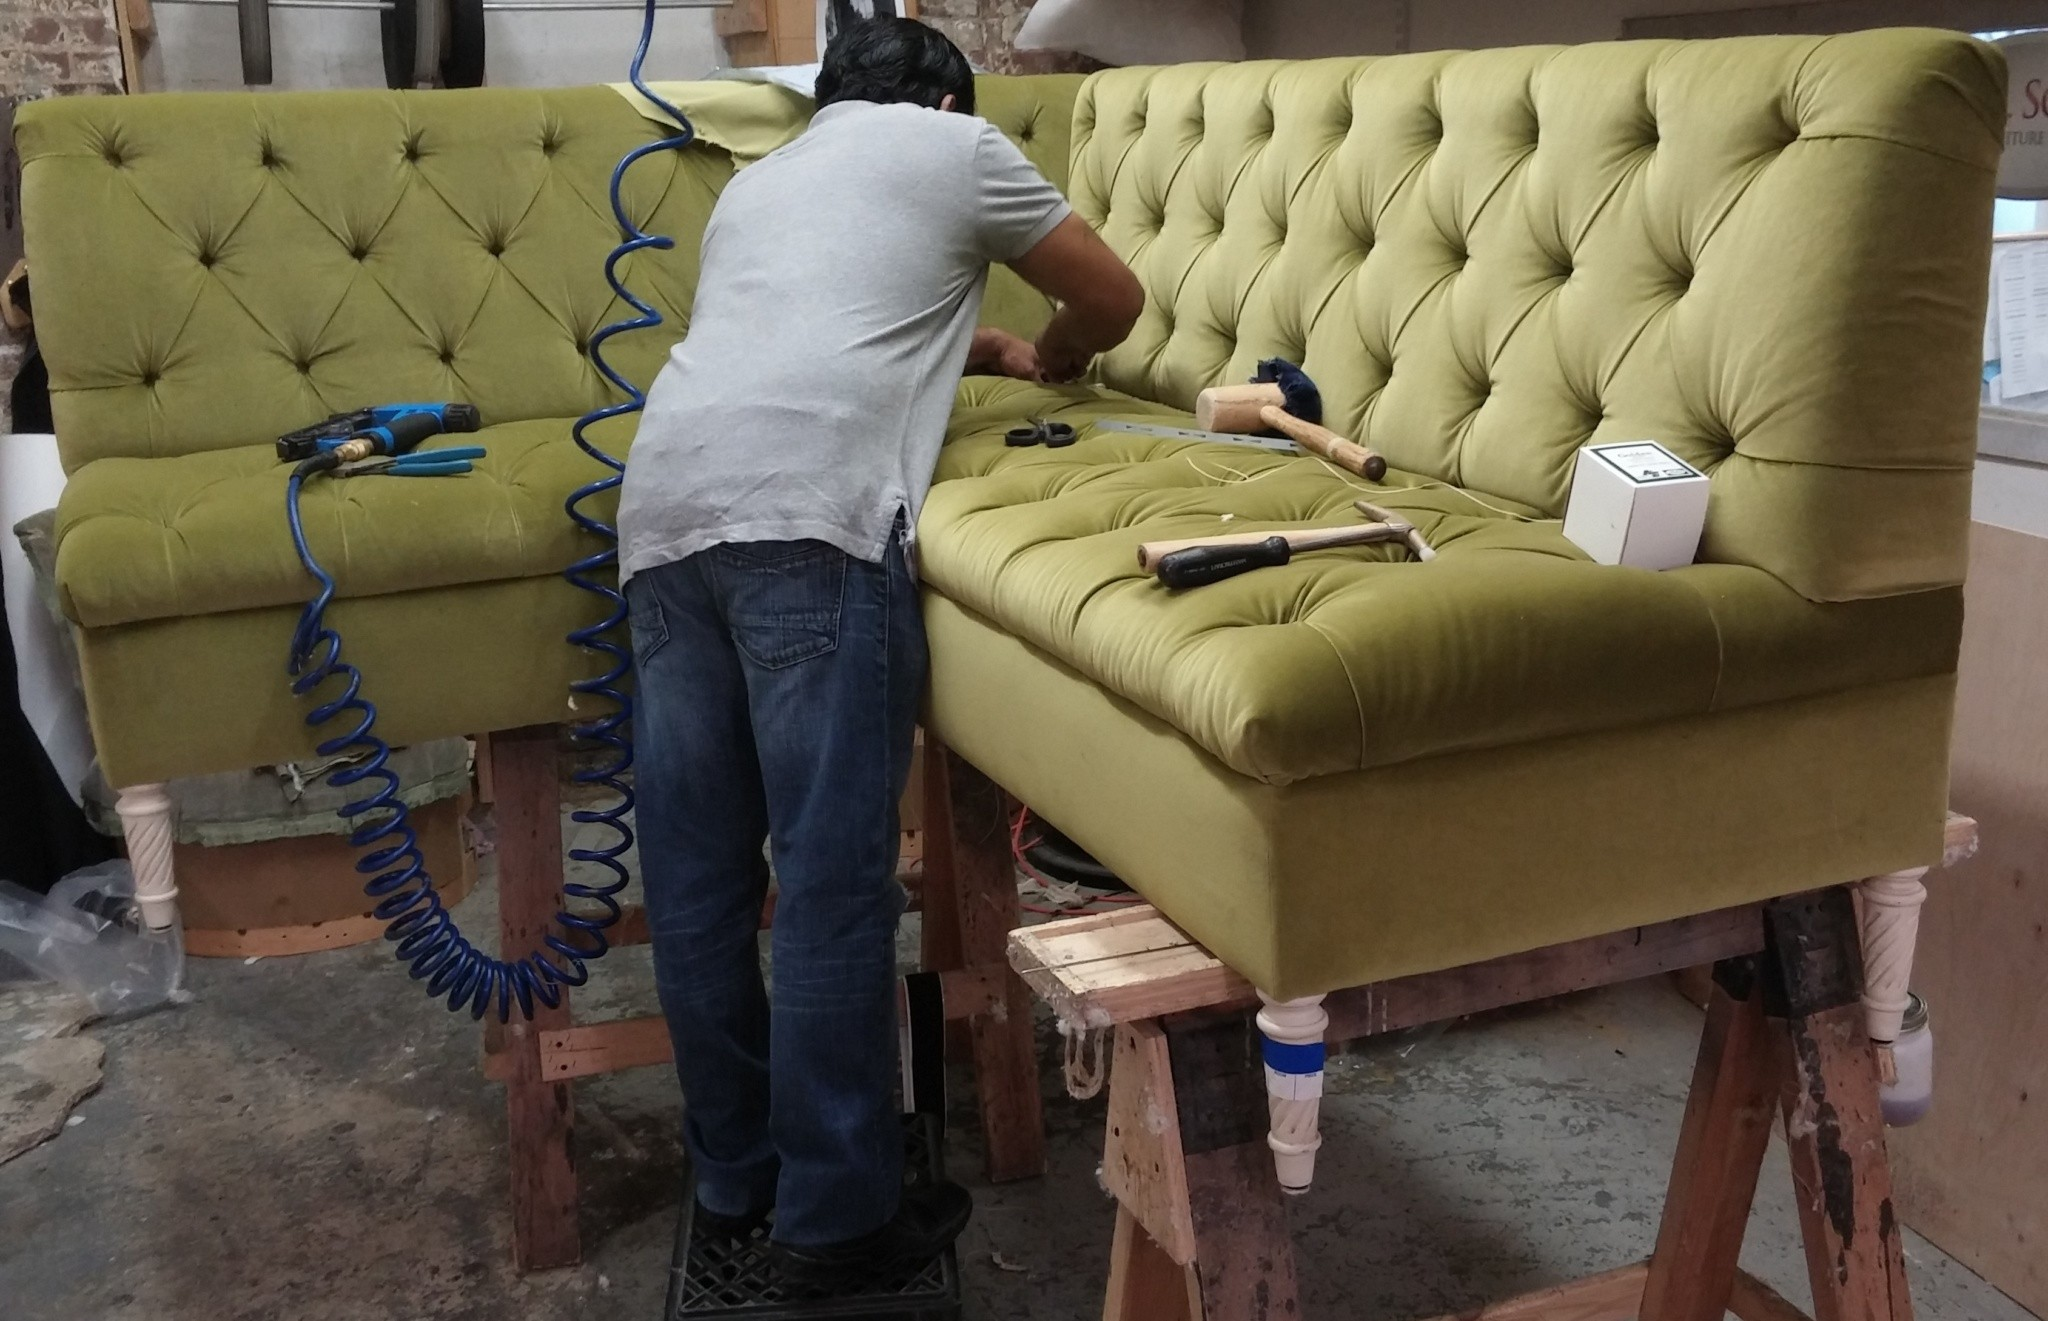 Upholstery dust mites removal services in Hughes